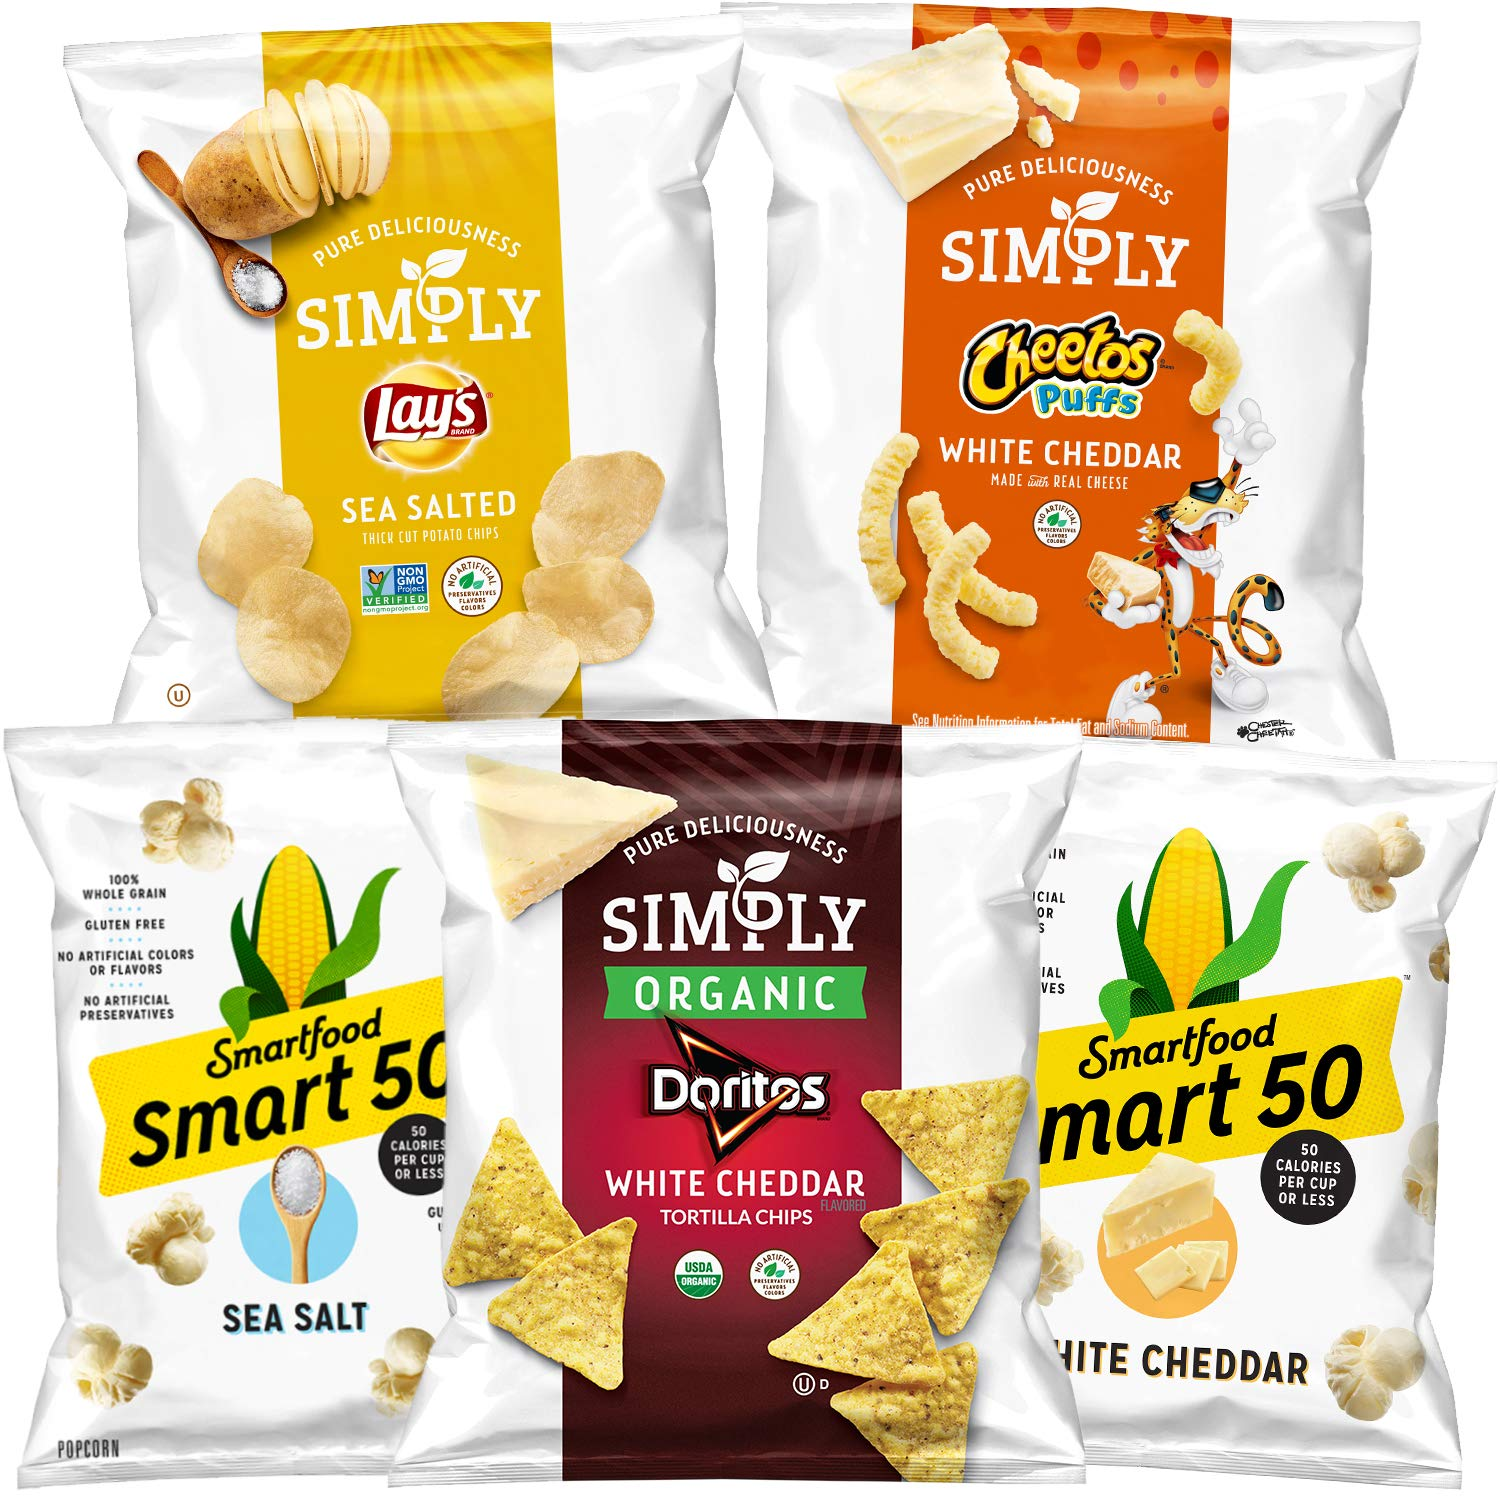 Simply & Smart50 Variety Pack, (36 Pack) (Packaging May Vary) by Simply